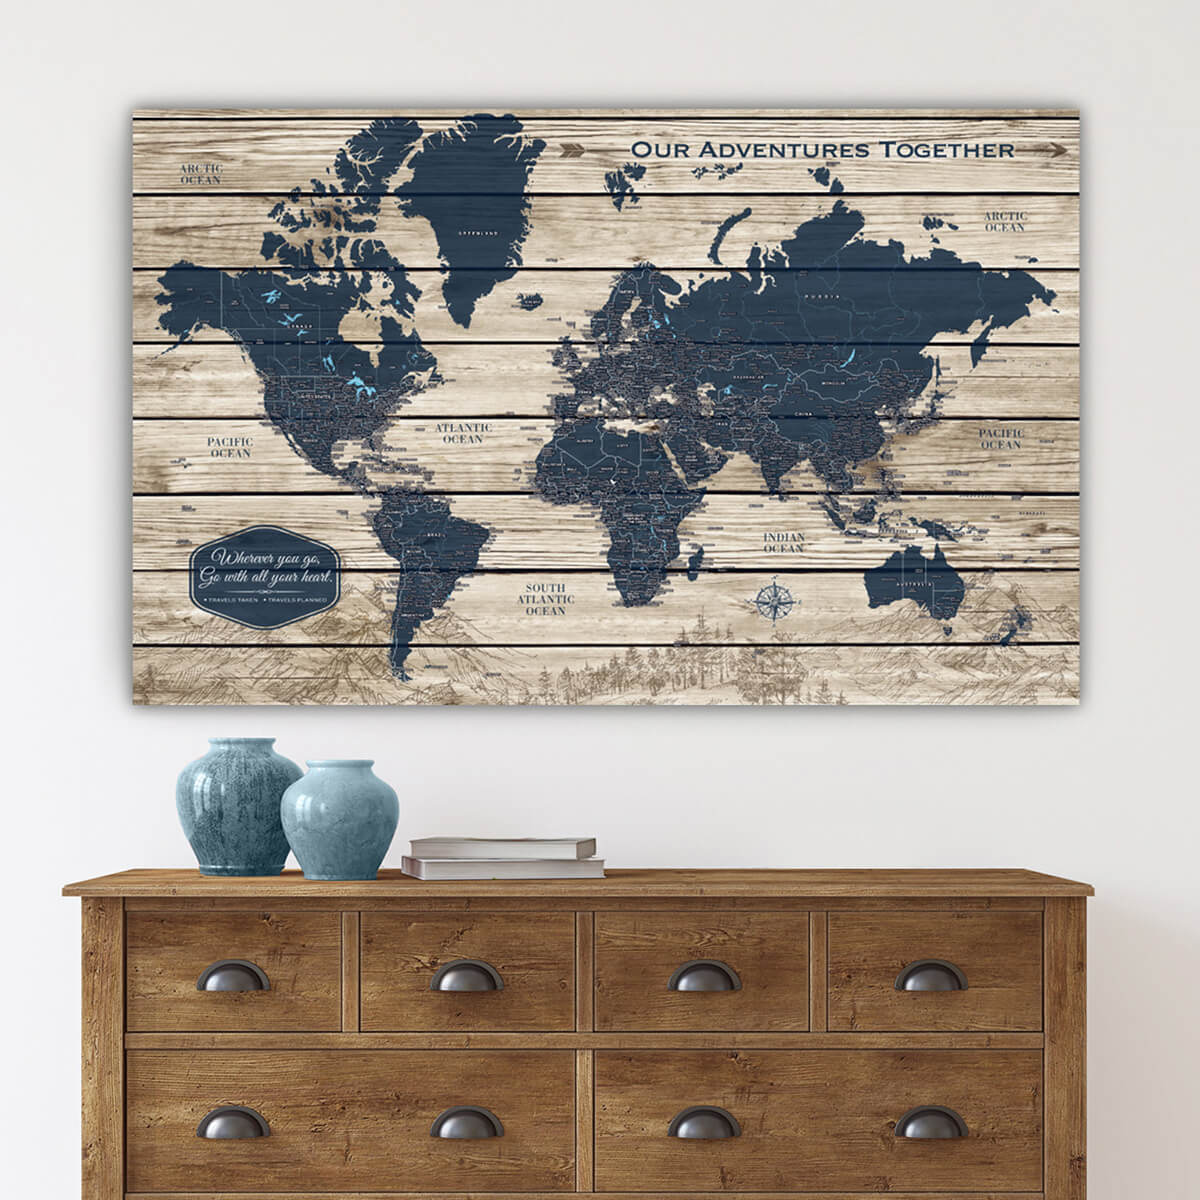 Mountain Forest Adventure Together Wooden Pallet Wall Art